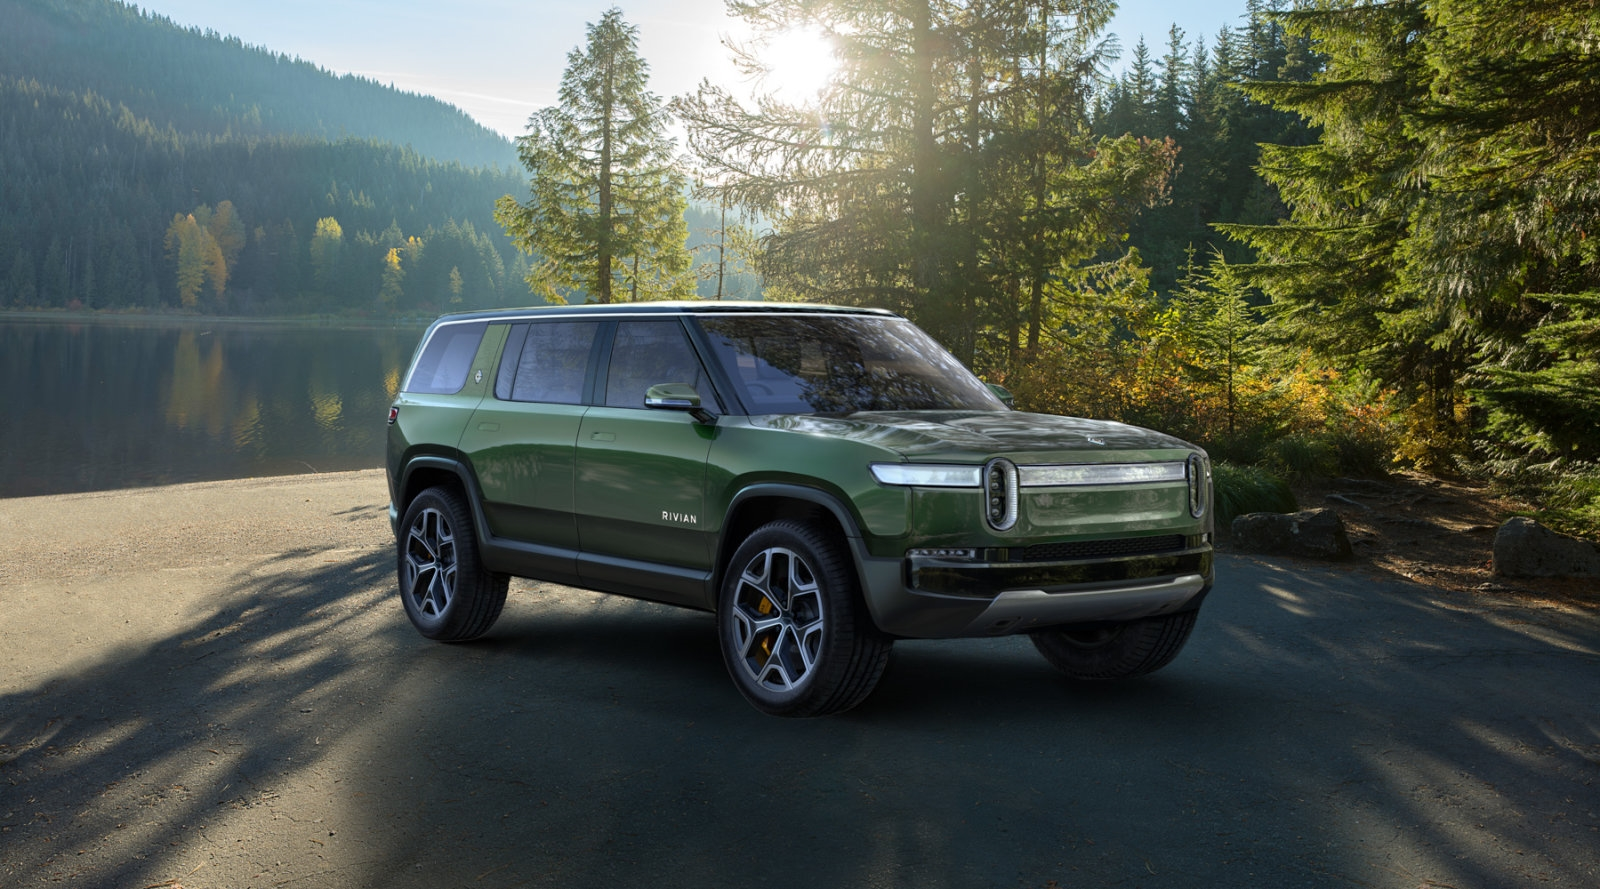 Rivian turned down GM investment so it could build EVs for others | DeviceDaily.com